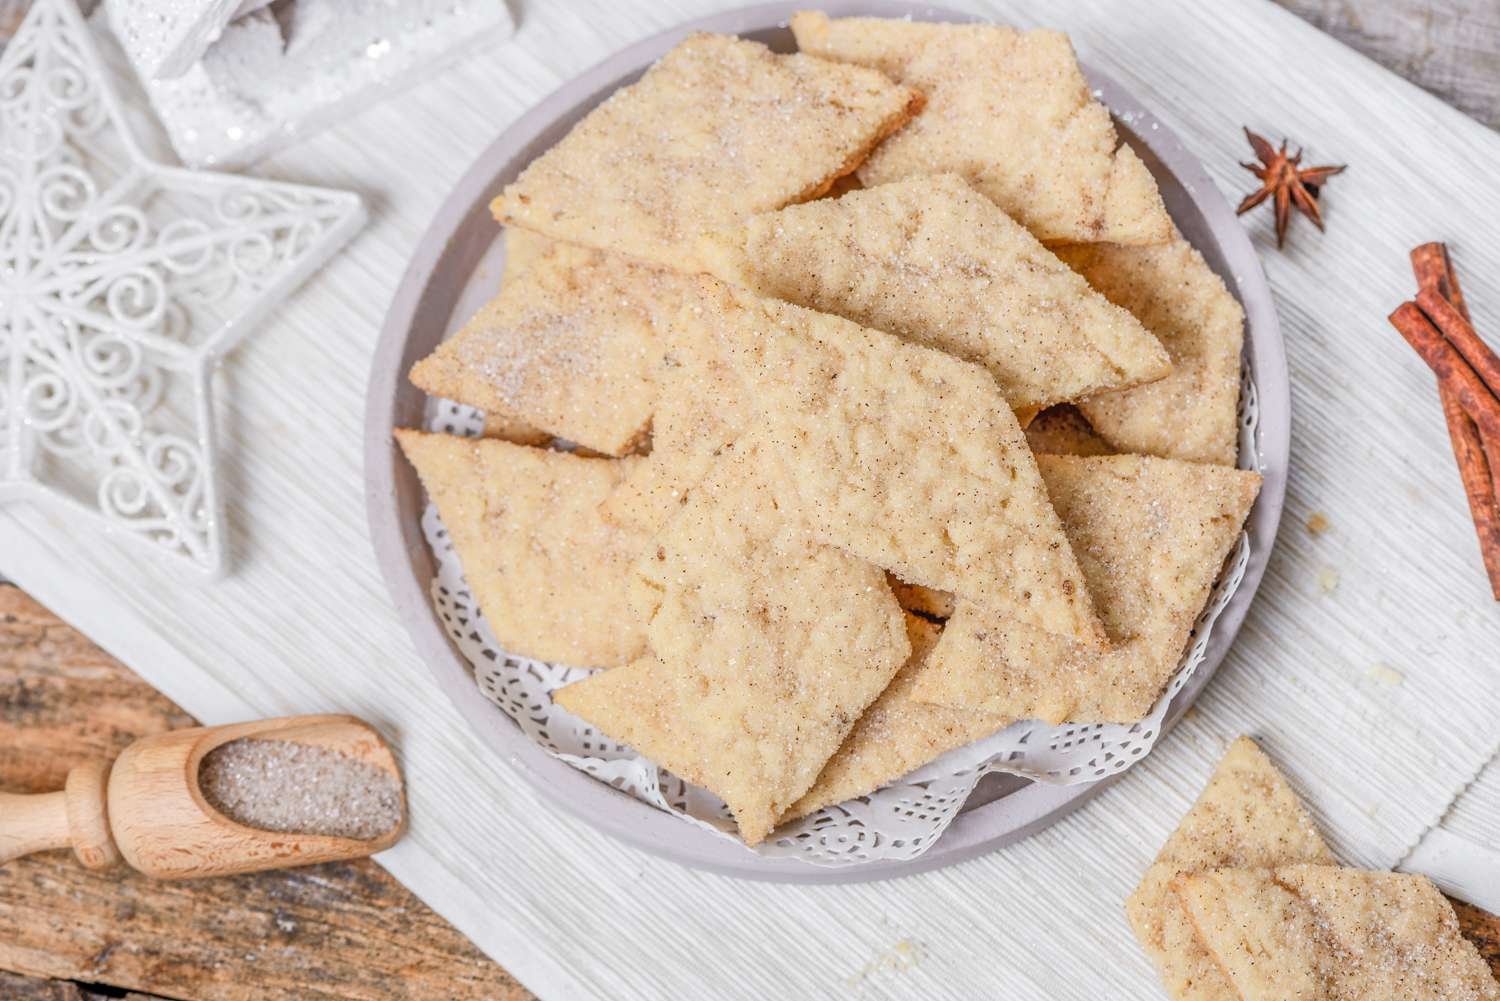 New Mexican Anise Cookies (Bizcochitos) Recipe